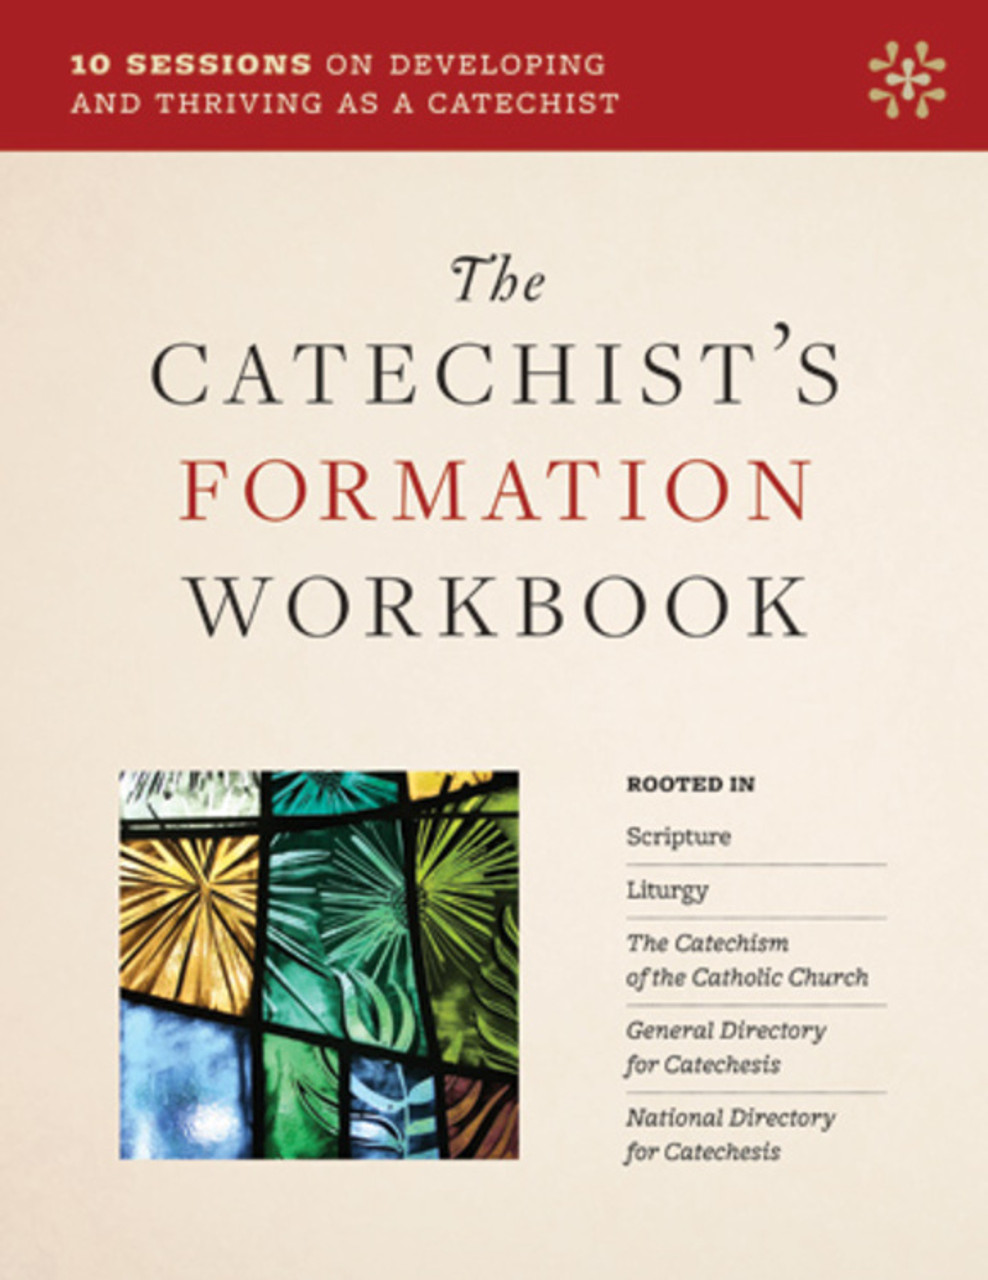 The Catechists Formation Workbook 10 Sessions On Developing And